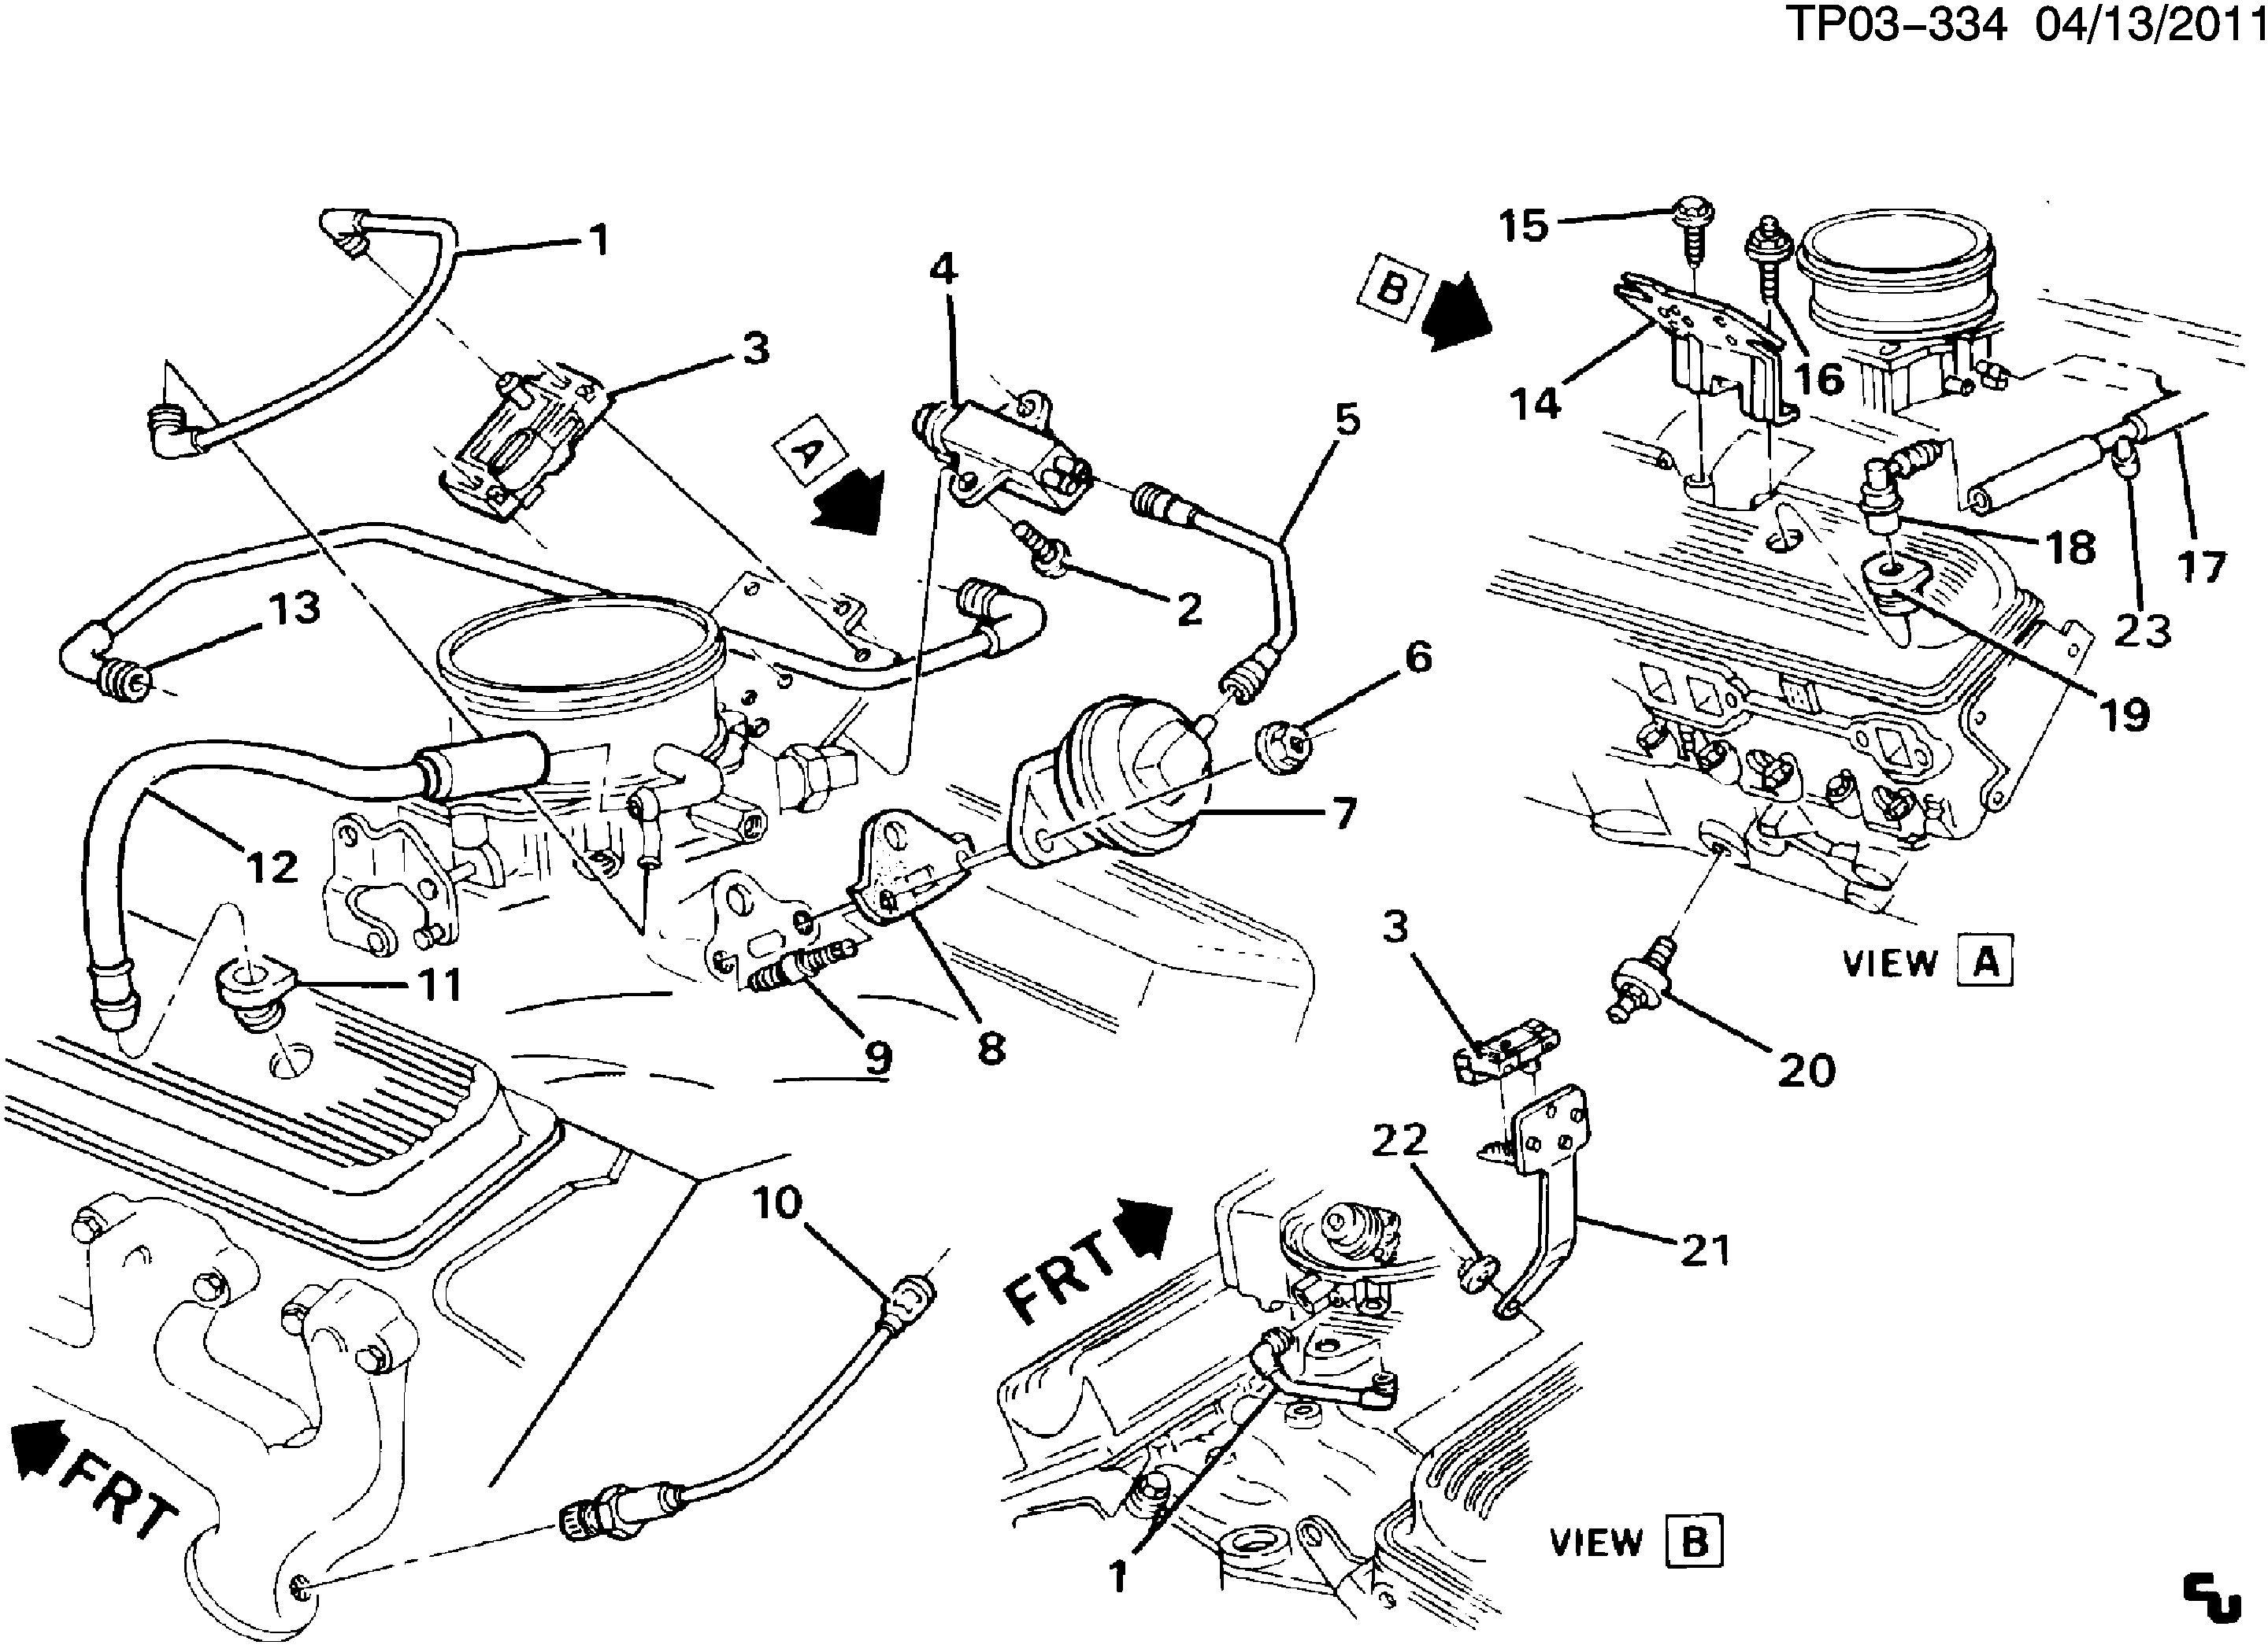 diagram] gm 350 engine diagram full version hd quality engine diagram -  thediagramguru.nuovamam.it  diagram database